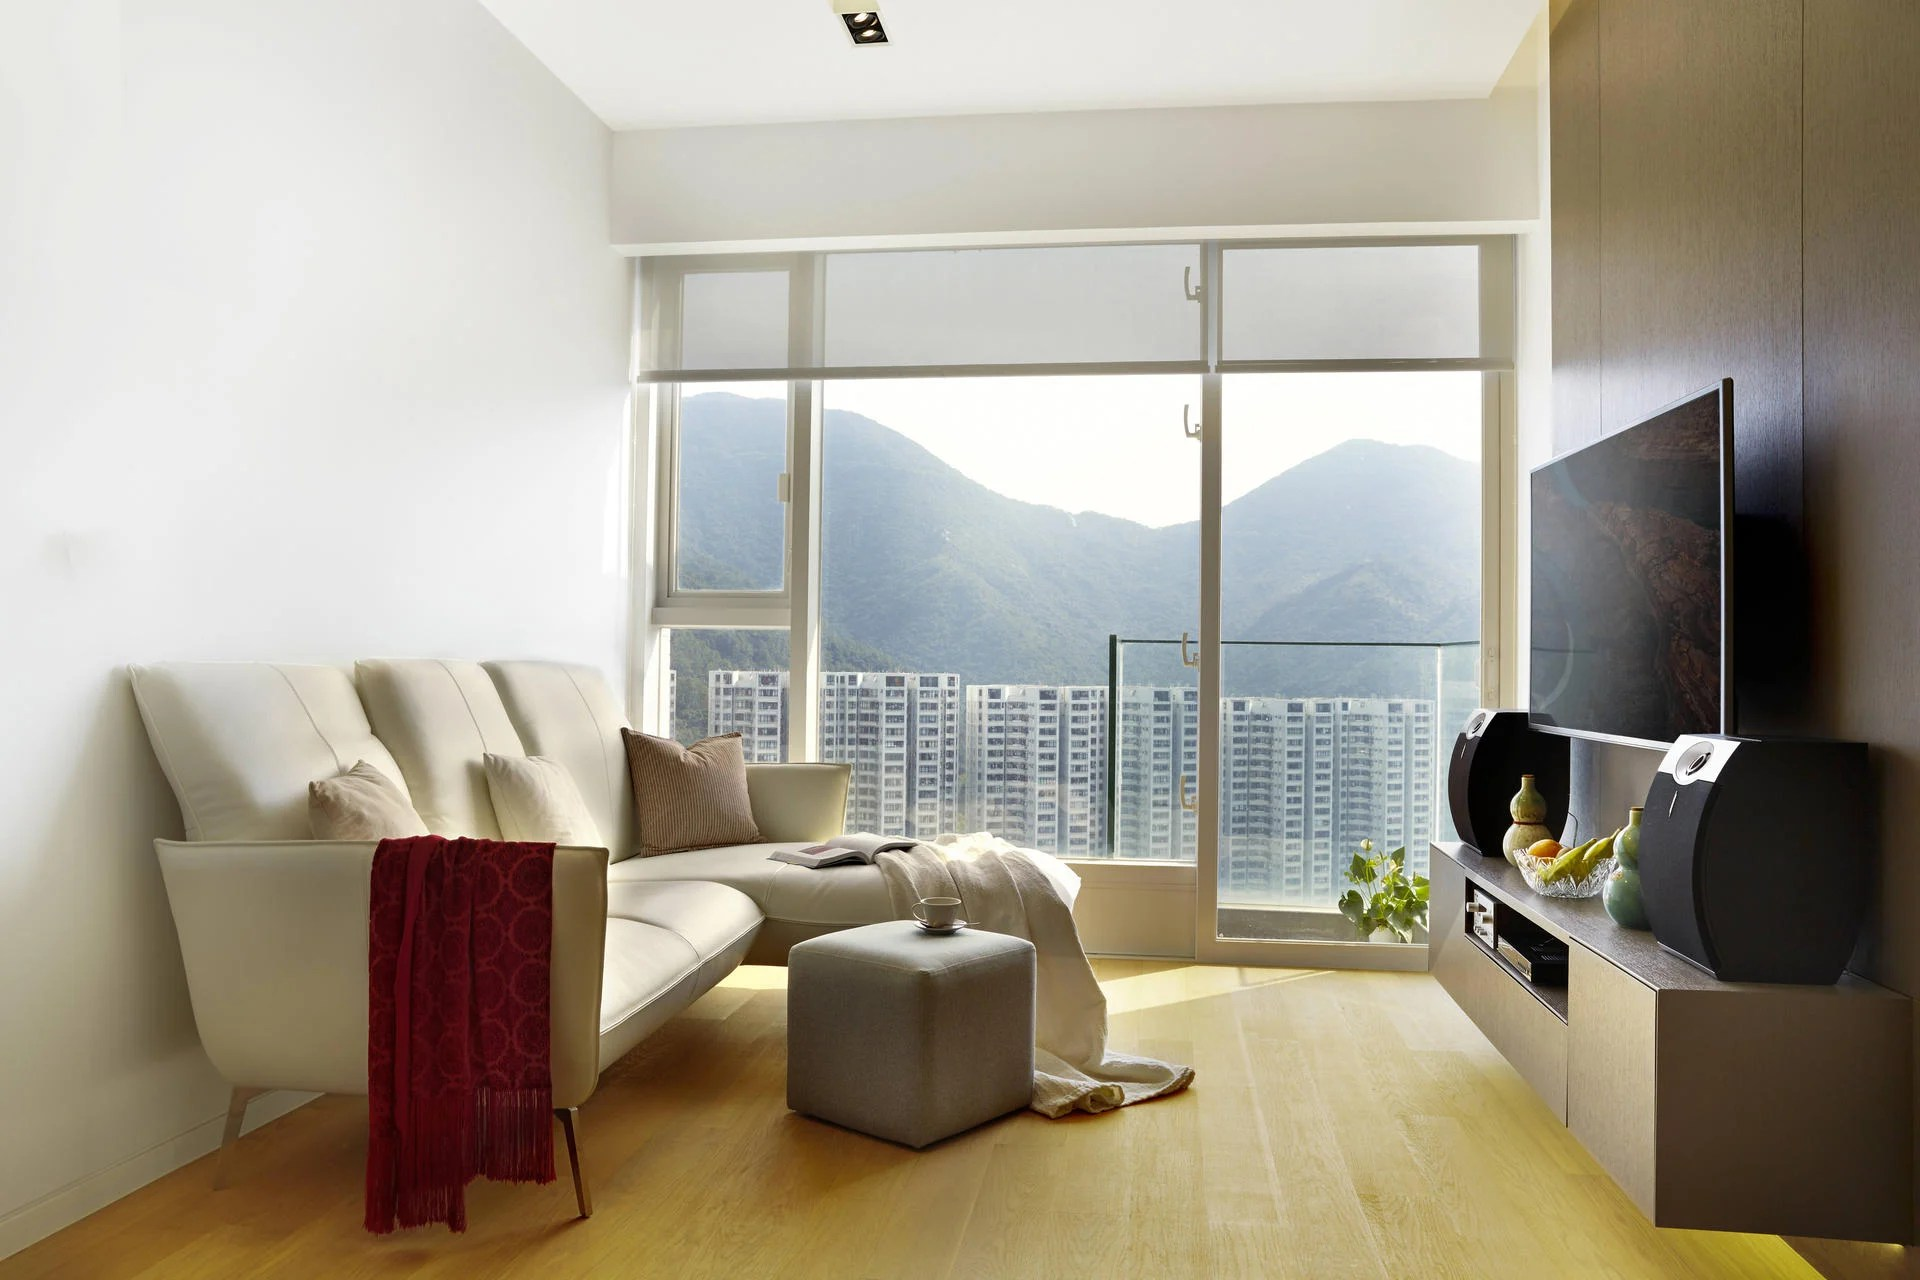 Hong Kong Apartment Interior Minimalist Chic A Hong Kong Apartment Shows How It 39s Done